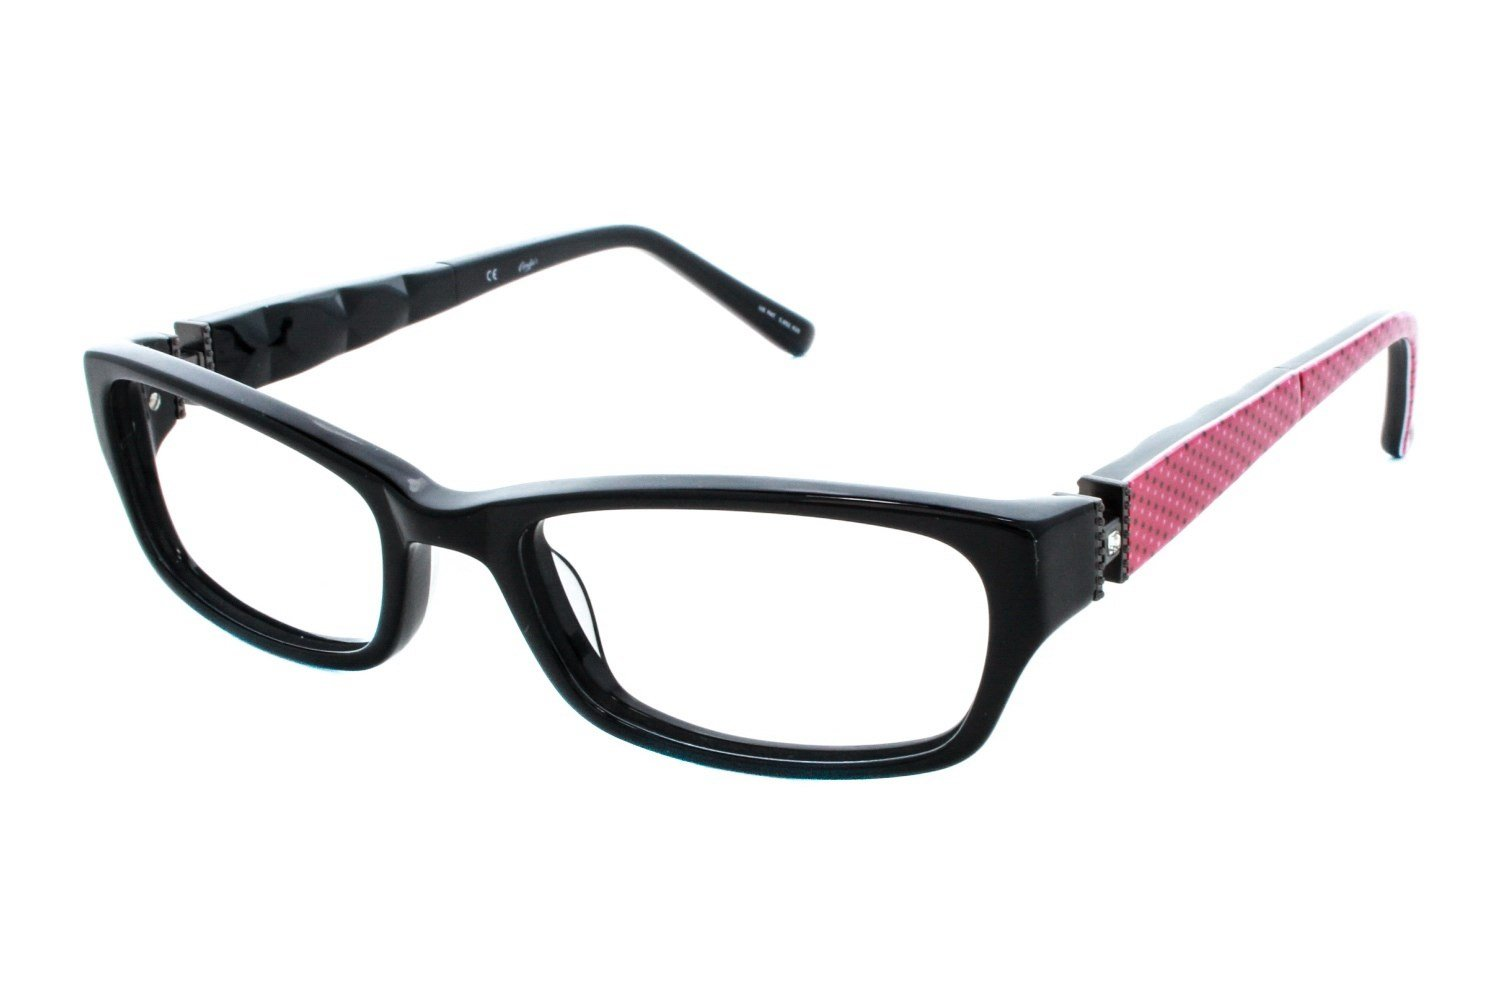 Candies Diani Prescription Eyeglasses Frames